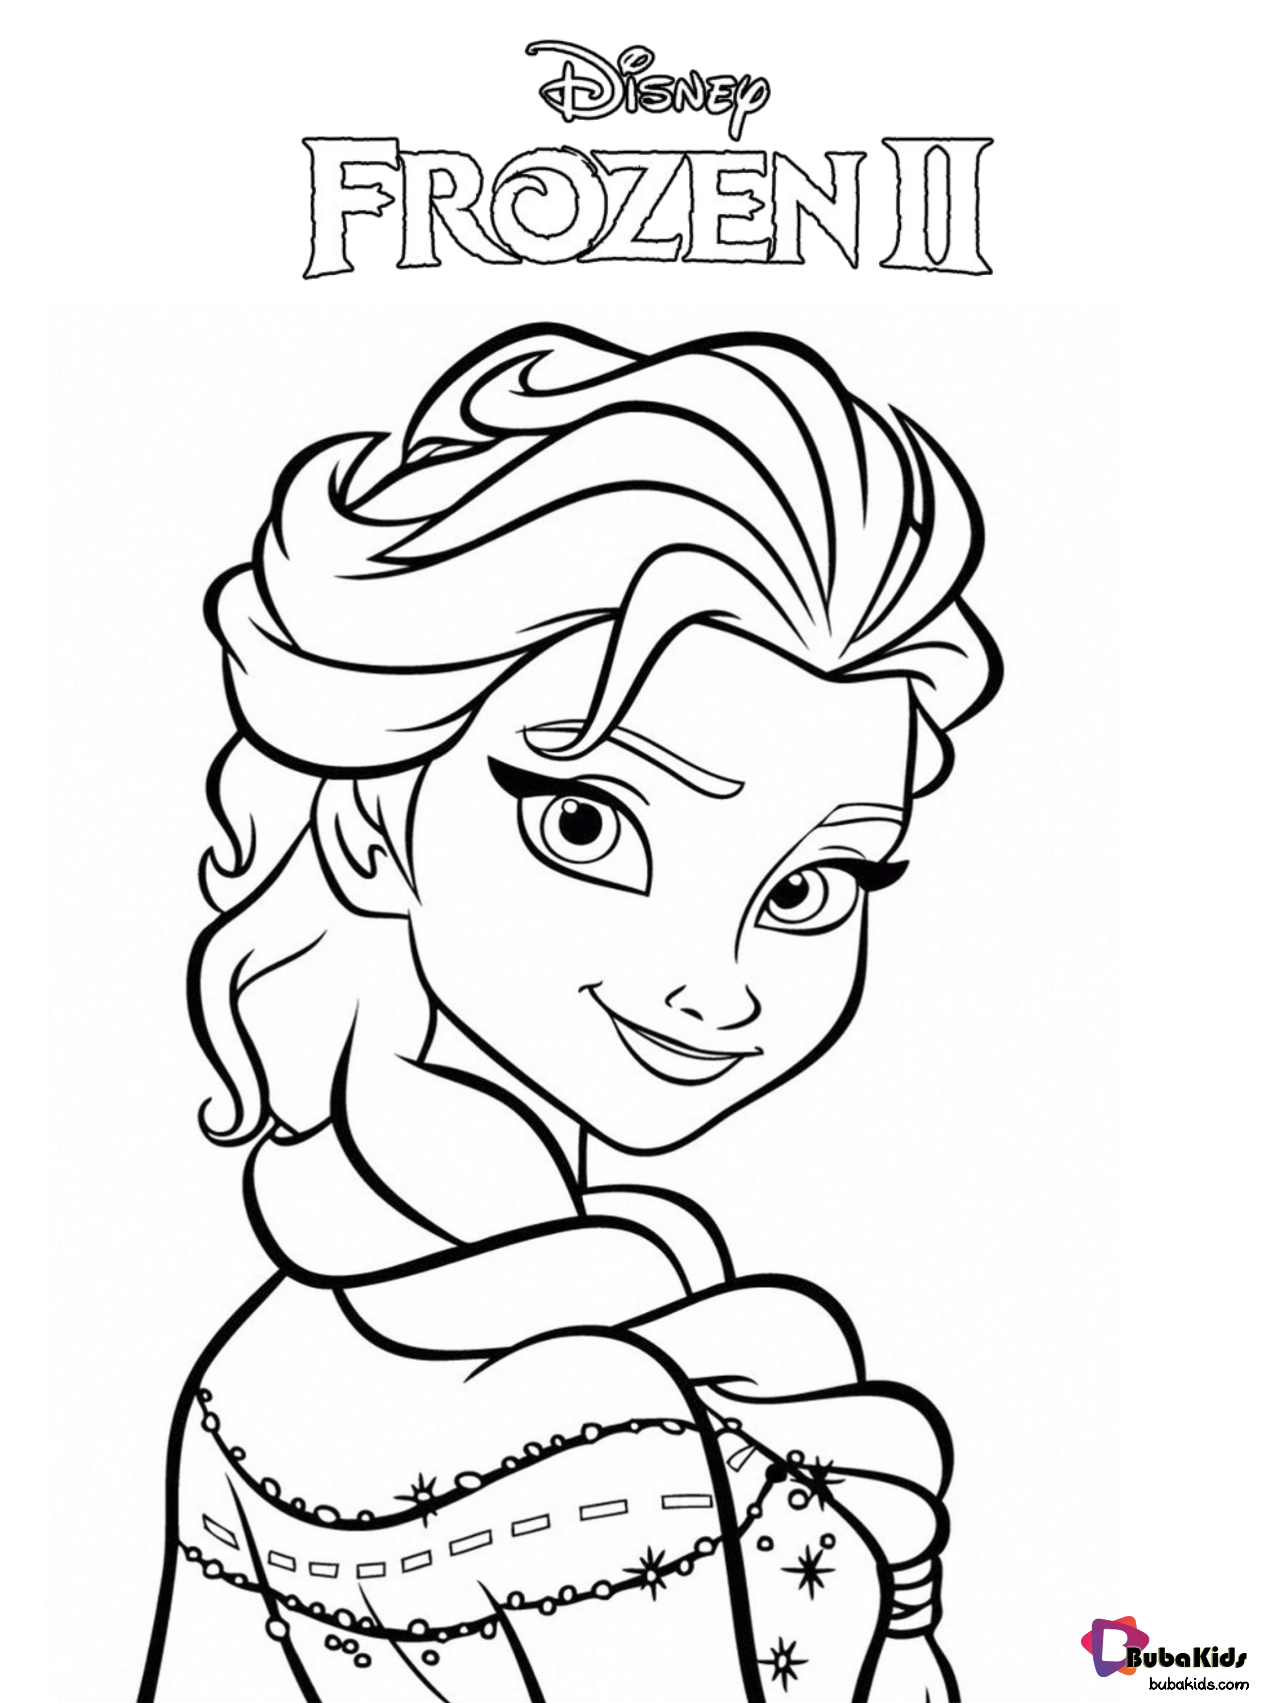 Free Download And Printable Frozen 2 Queen Elsa Coloring Page Elsa Frozen 2 Quee Elsa Coloring Pages Disney Coloring Pages Printables Frozen Coloring Pages